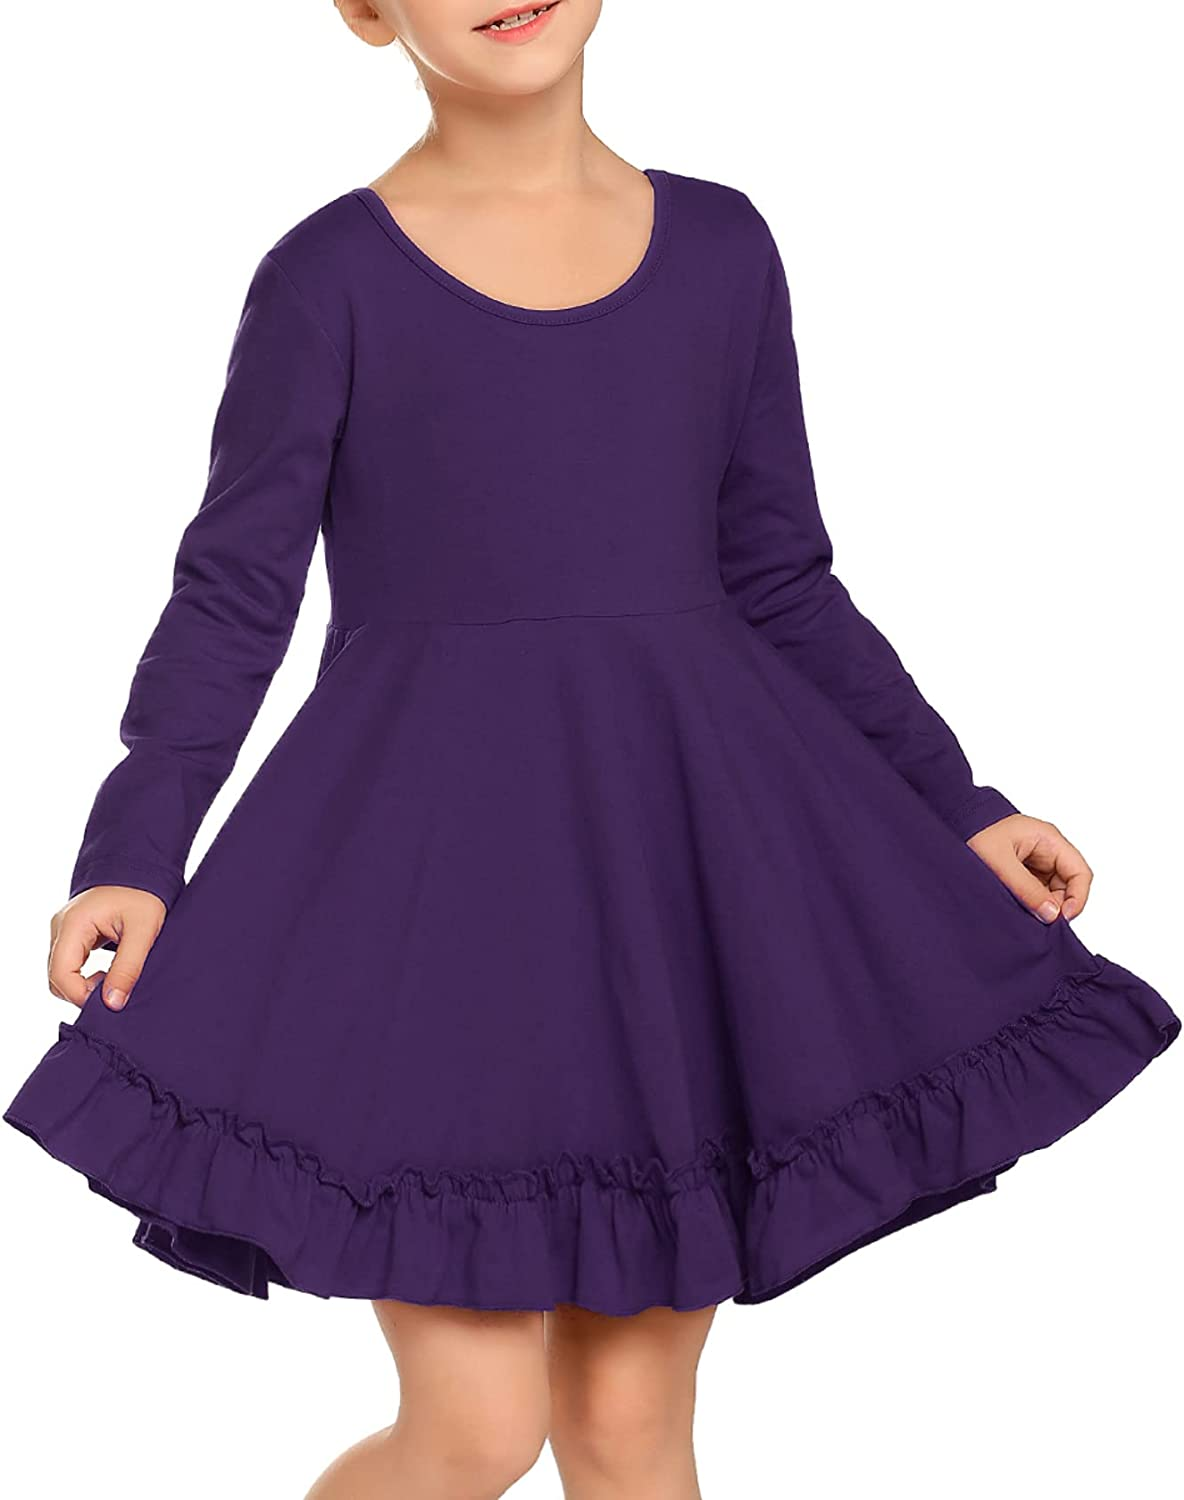 Arshiner Girls Dress Long Sleeve A Line Twirly Skater Loose Casual/Party Dresses with Pocket